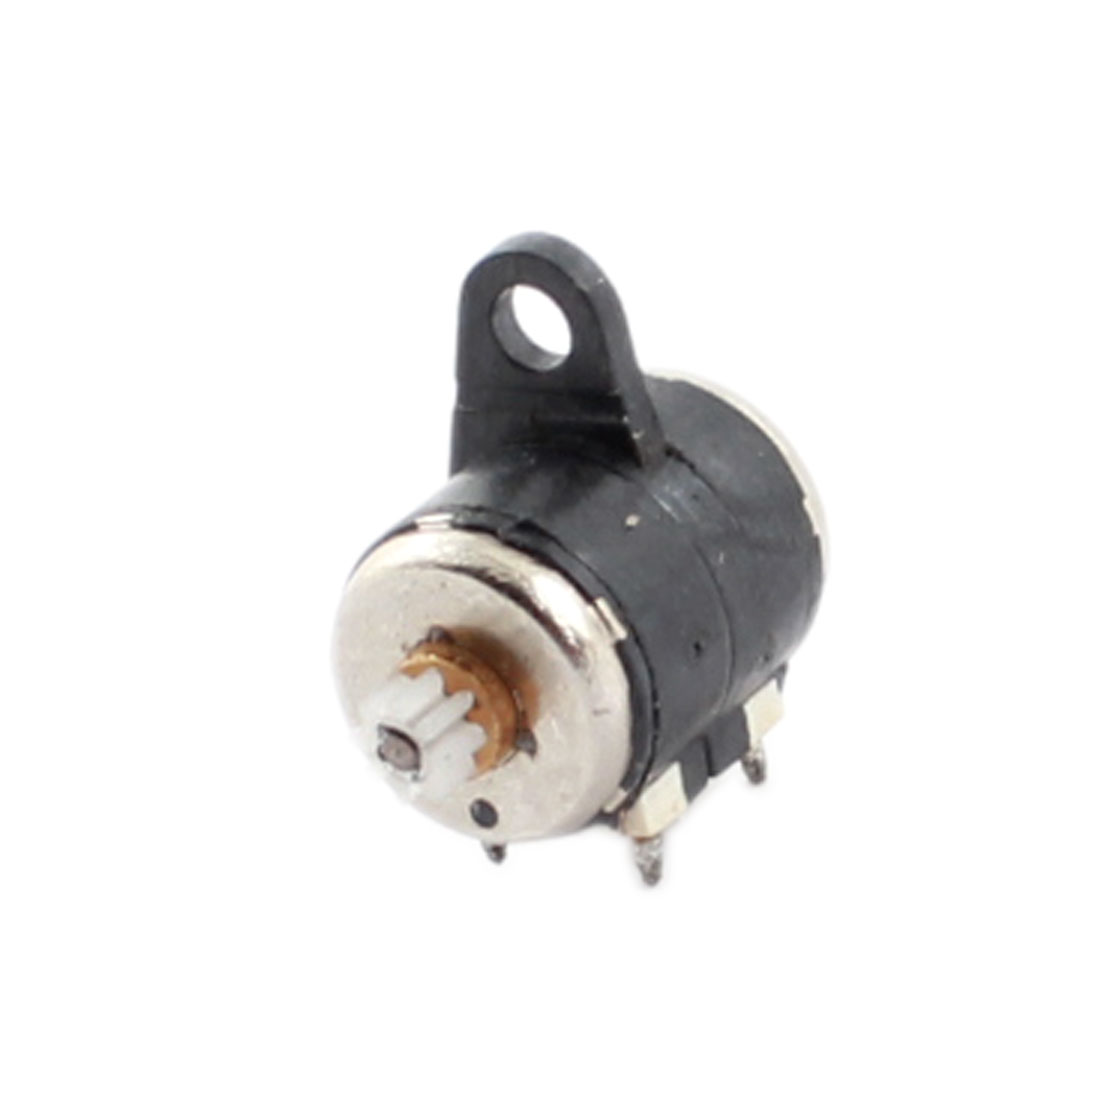 DC 3.7V 6mm Dia 2 Phase 4 Wire Micro Stepper Motor 32000RPM for Camera